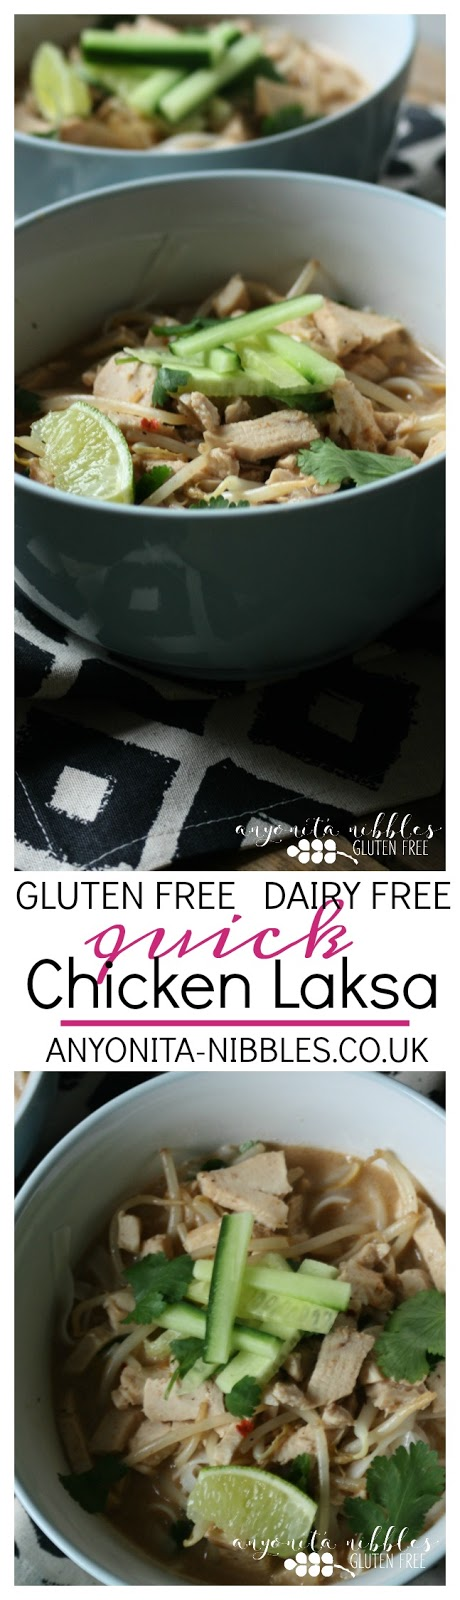 Gluten free, dairy free quick chicken laksa | Anyonita Nibbles